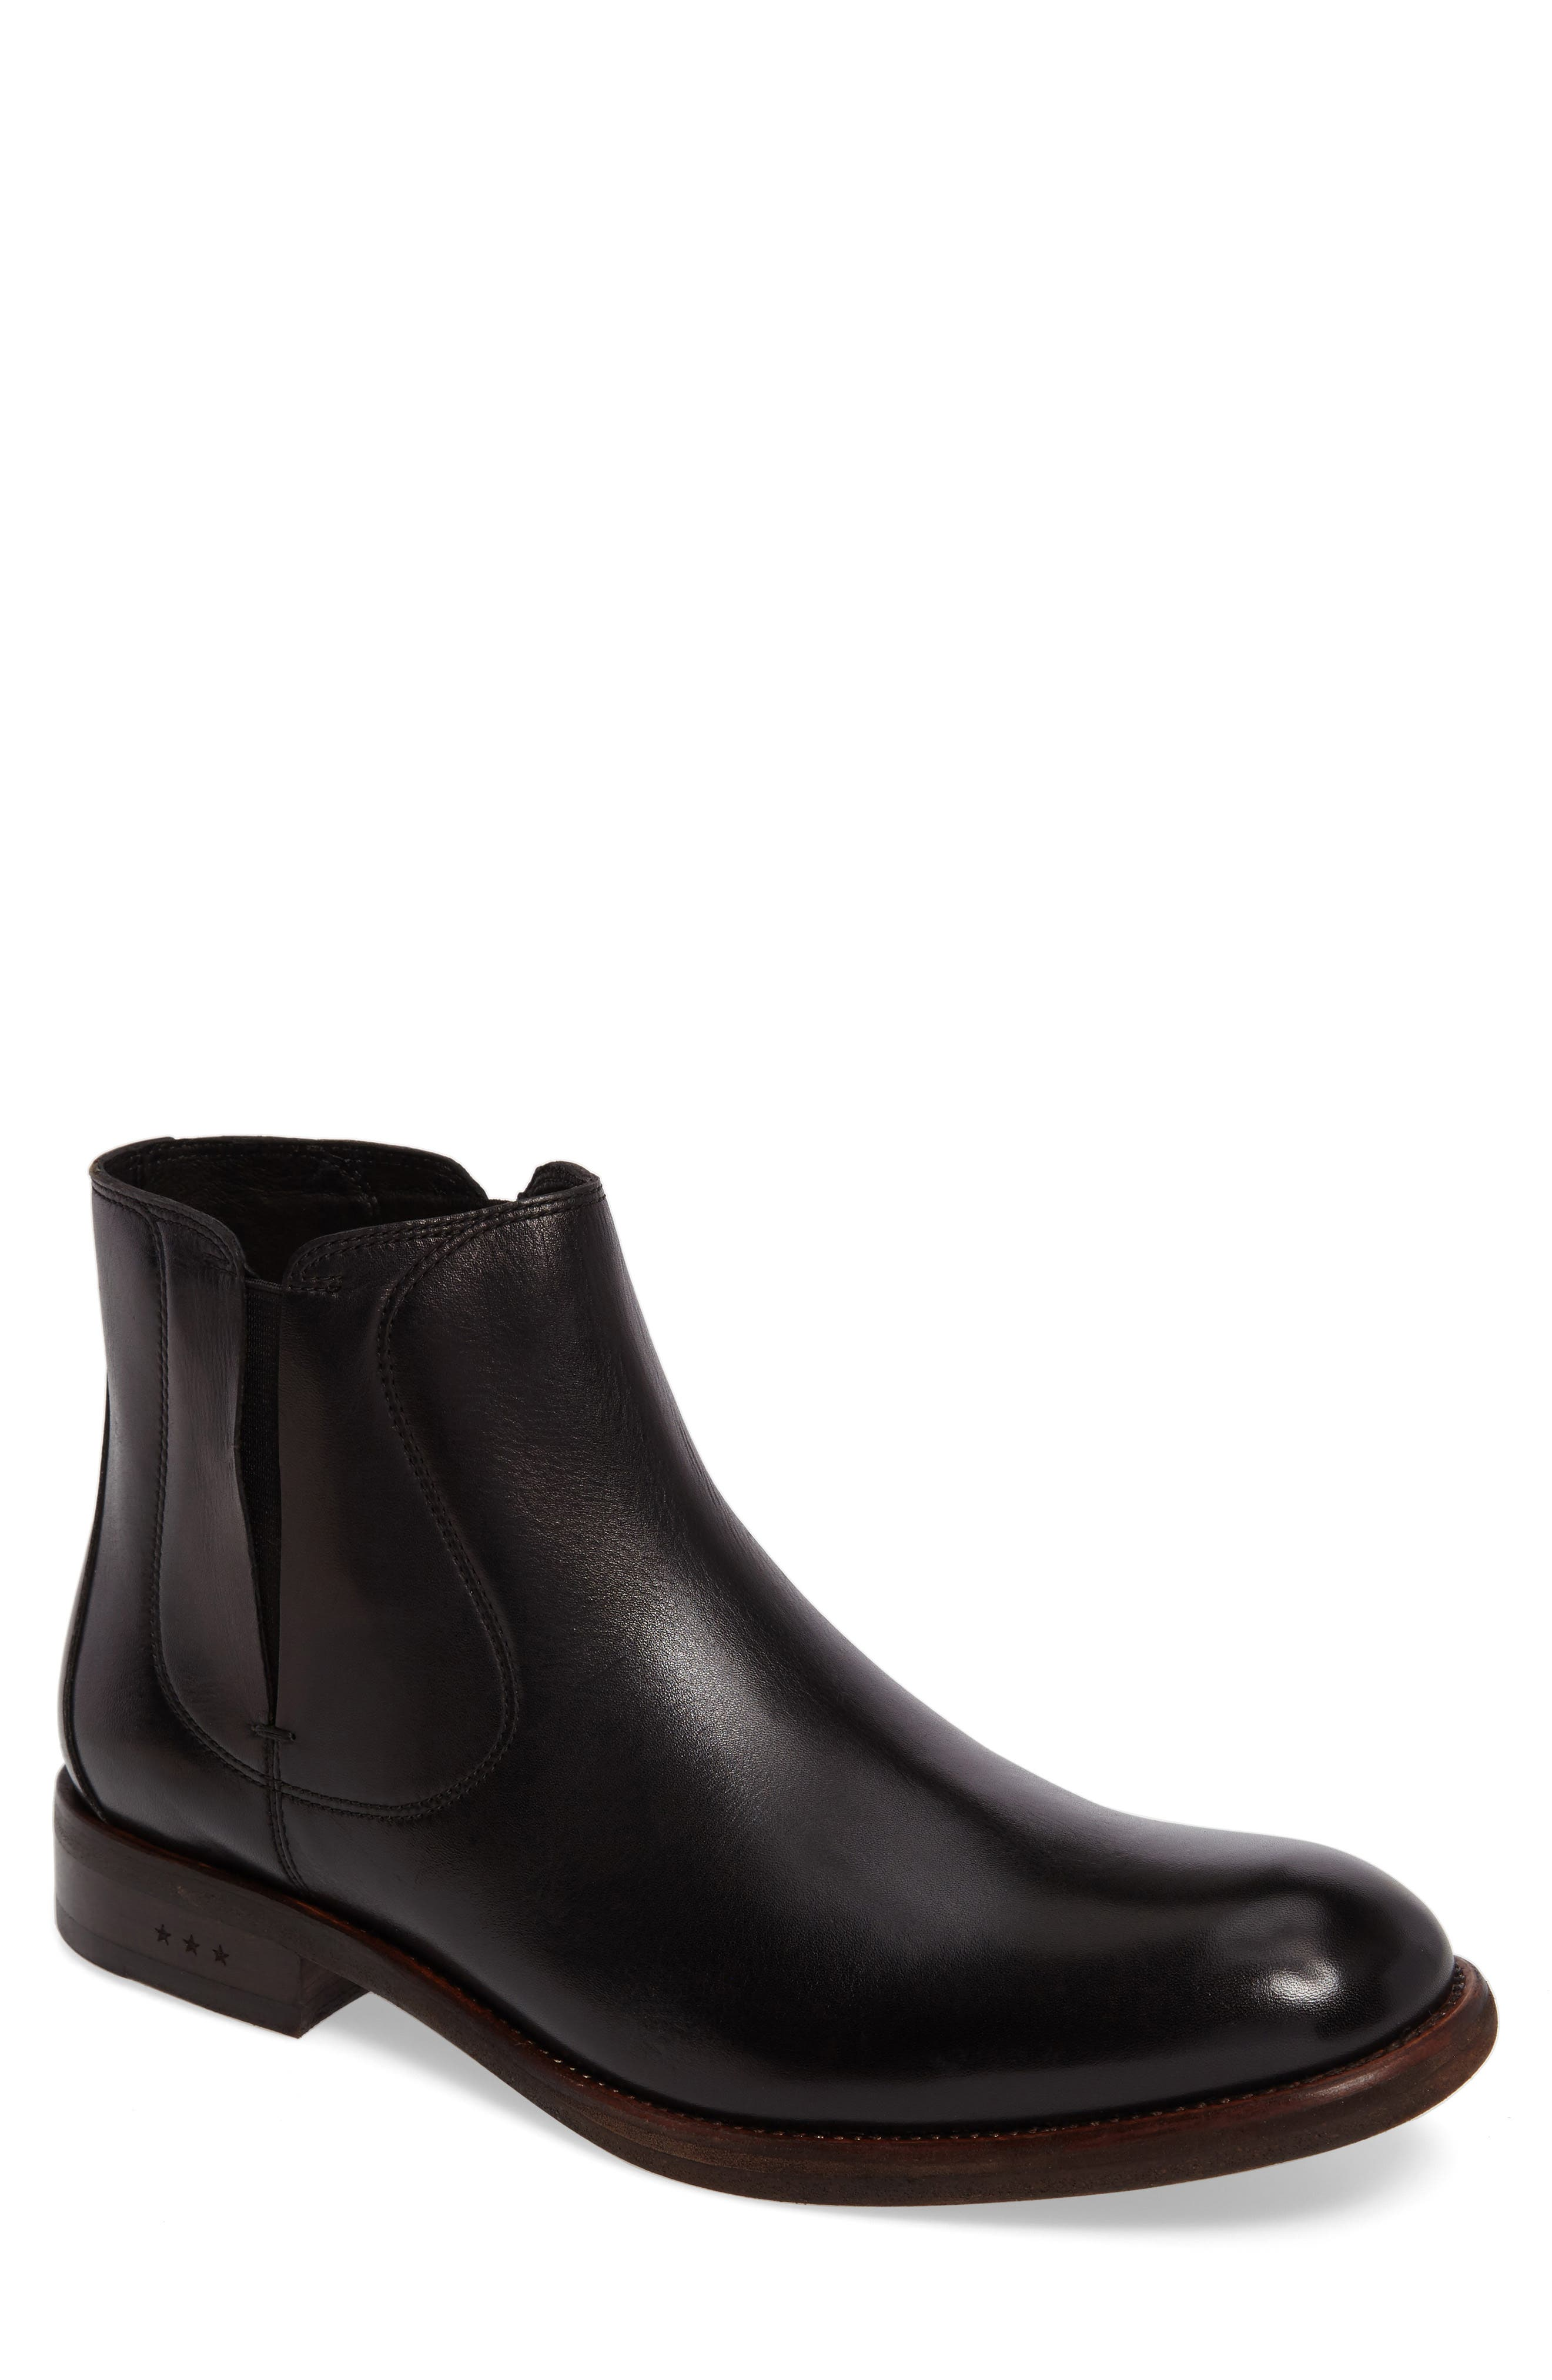 Waverley Chelsea Boot,                         Main,                         color, BLACK LEATHER